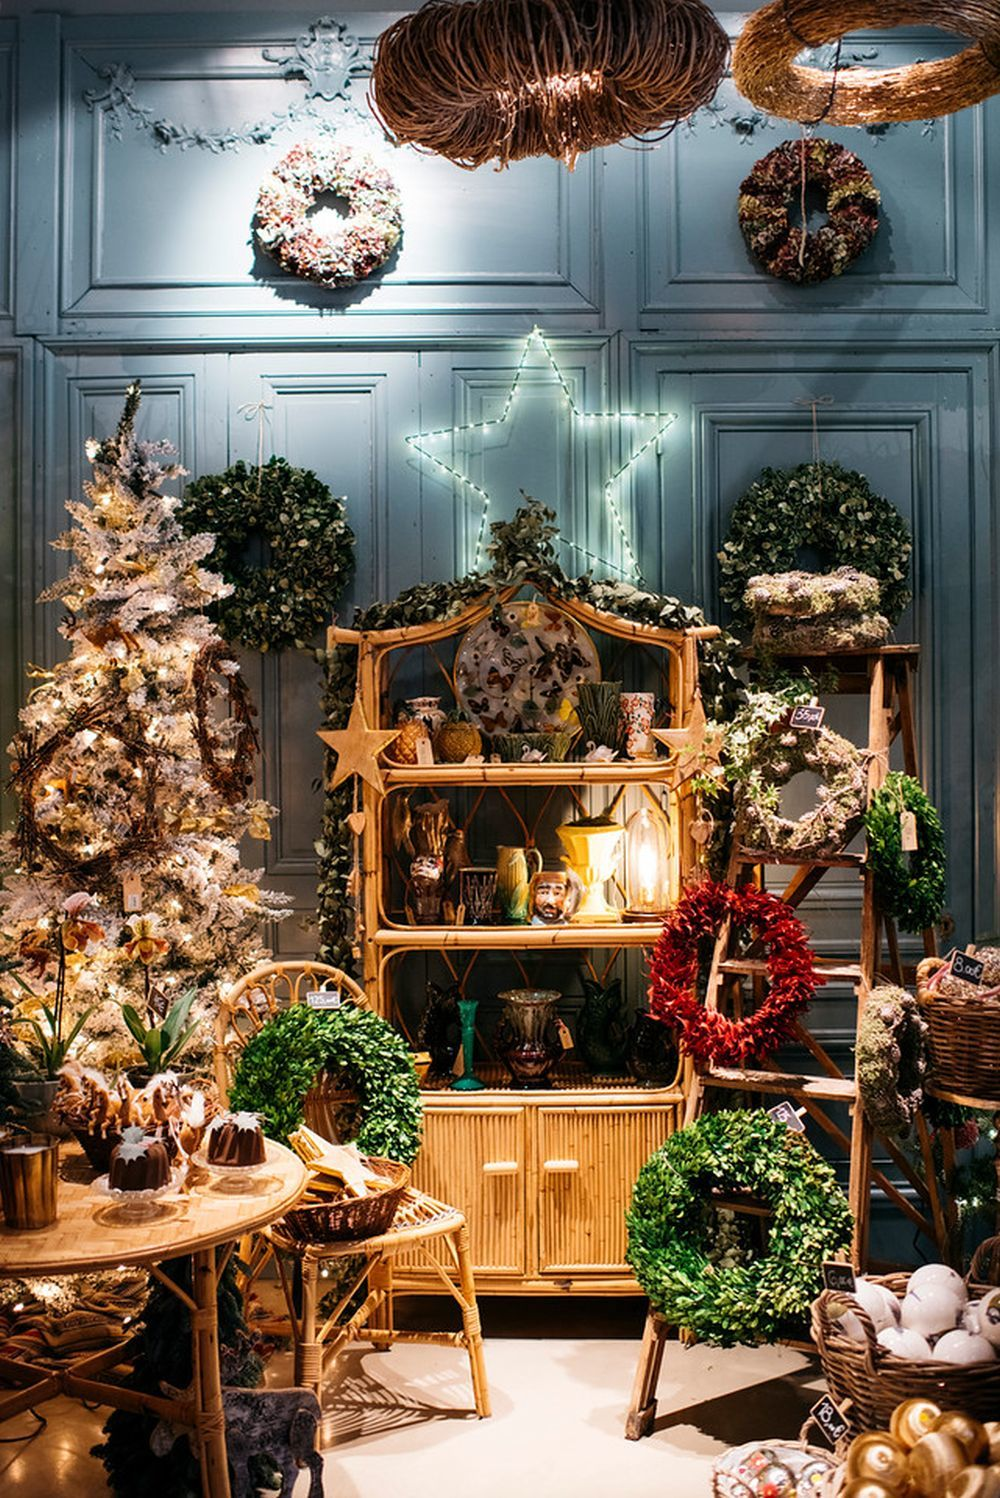 Decoración navideña de Sally Hambleton XMAS Shop